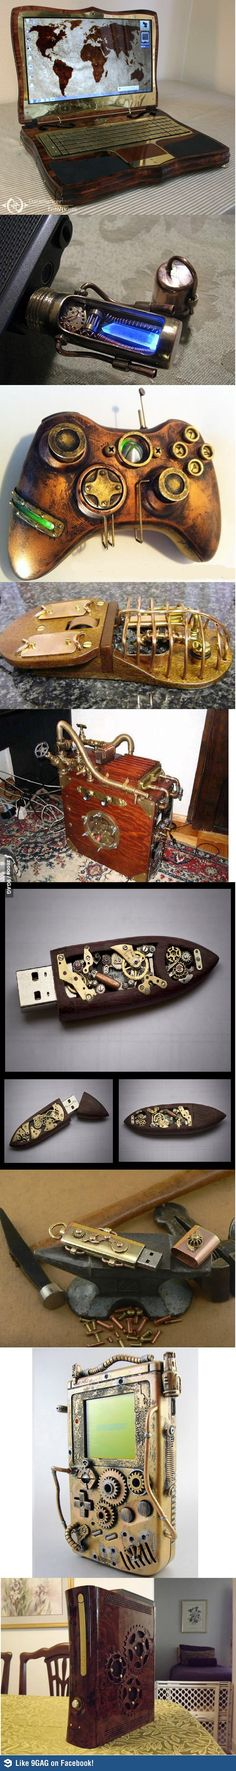 Steampunk styled tech. Excellent.